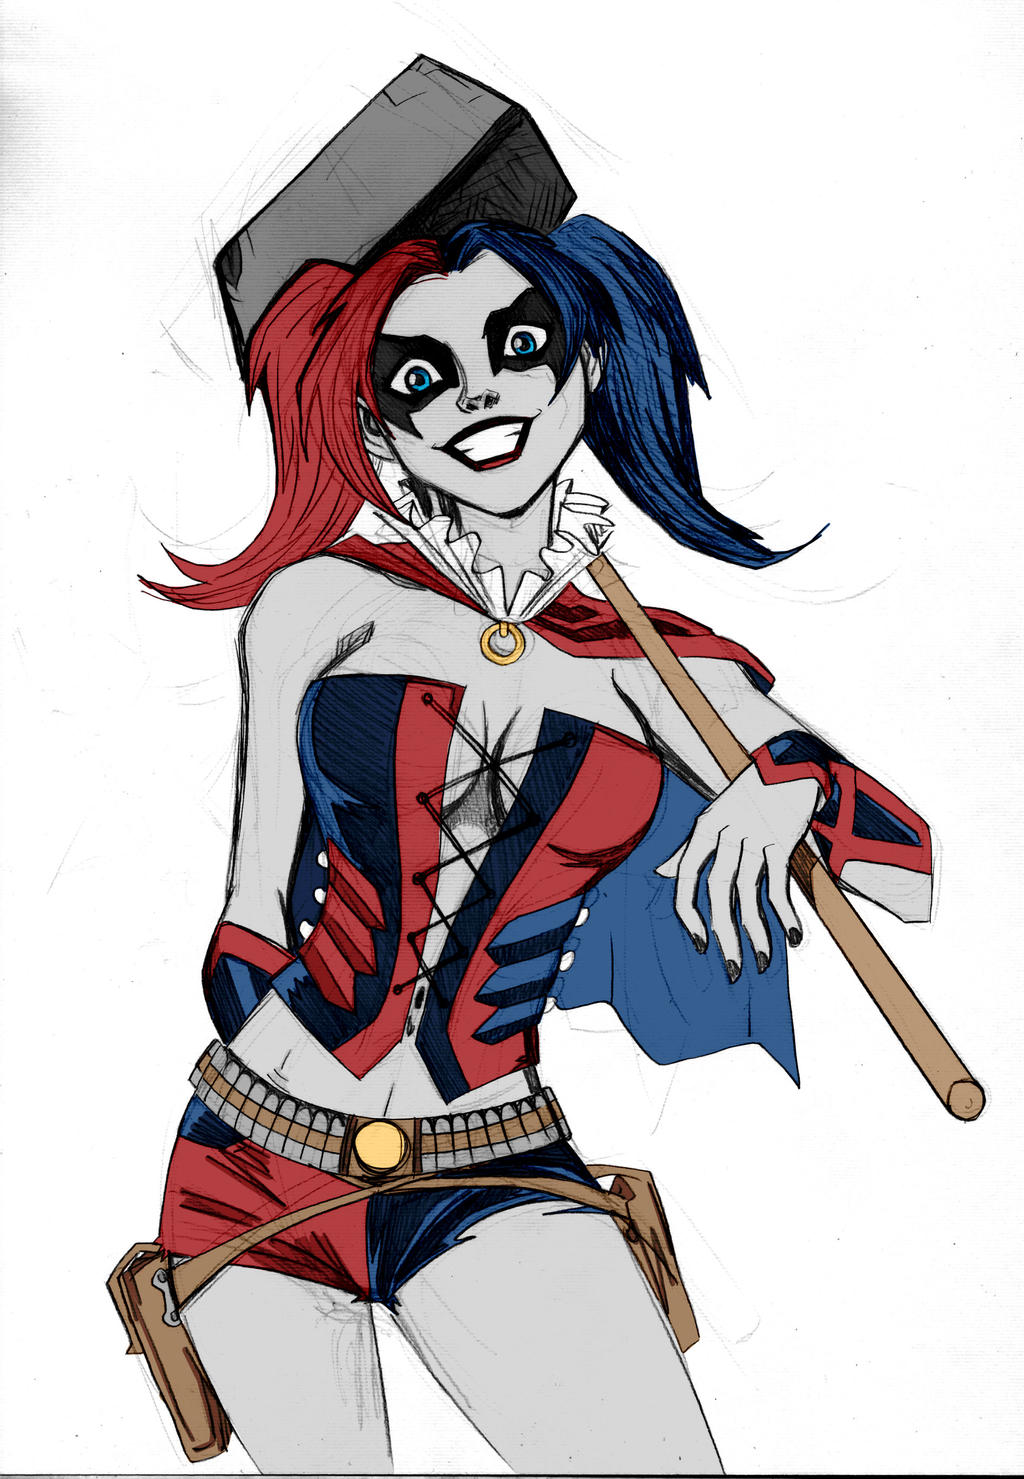 Harley Quinn Drawing: Harley Quinn Sketch By Lucianovecchio By Kenkira On DeviantArt